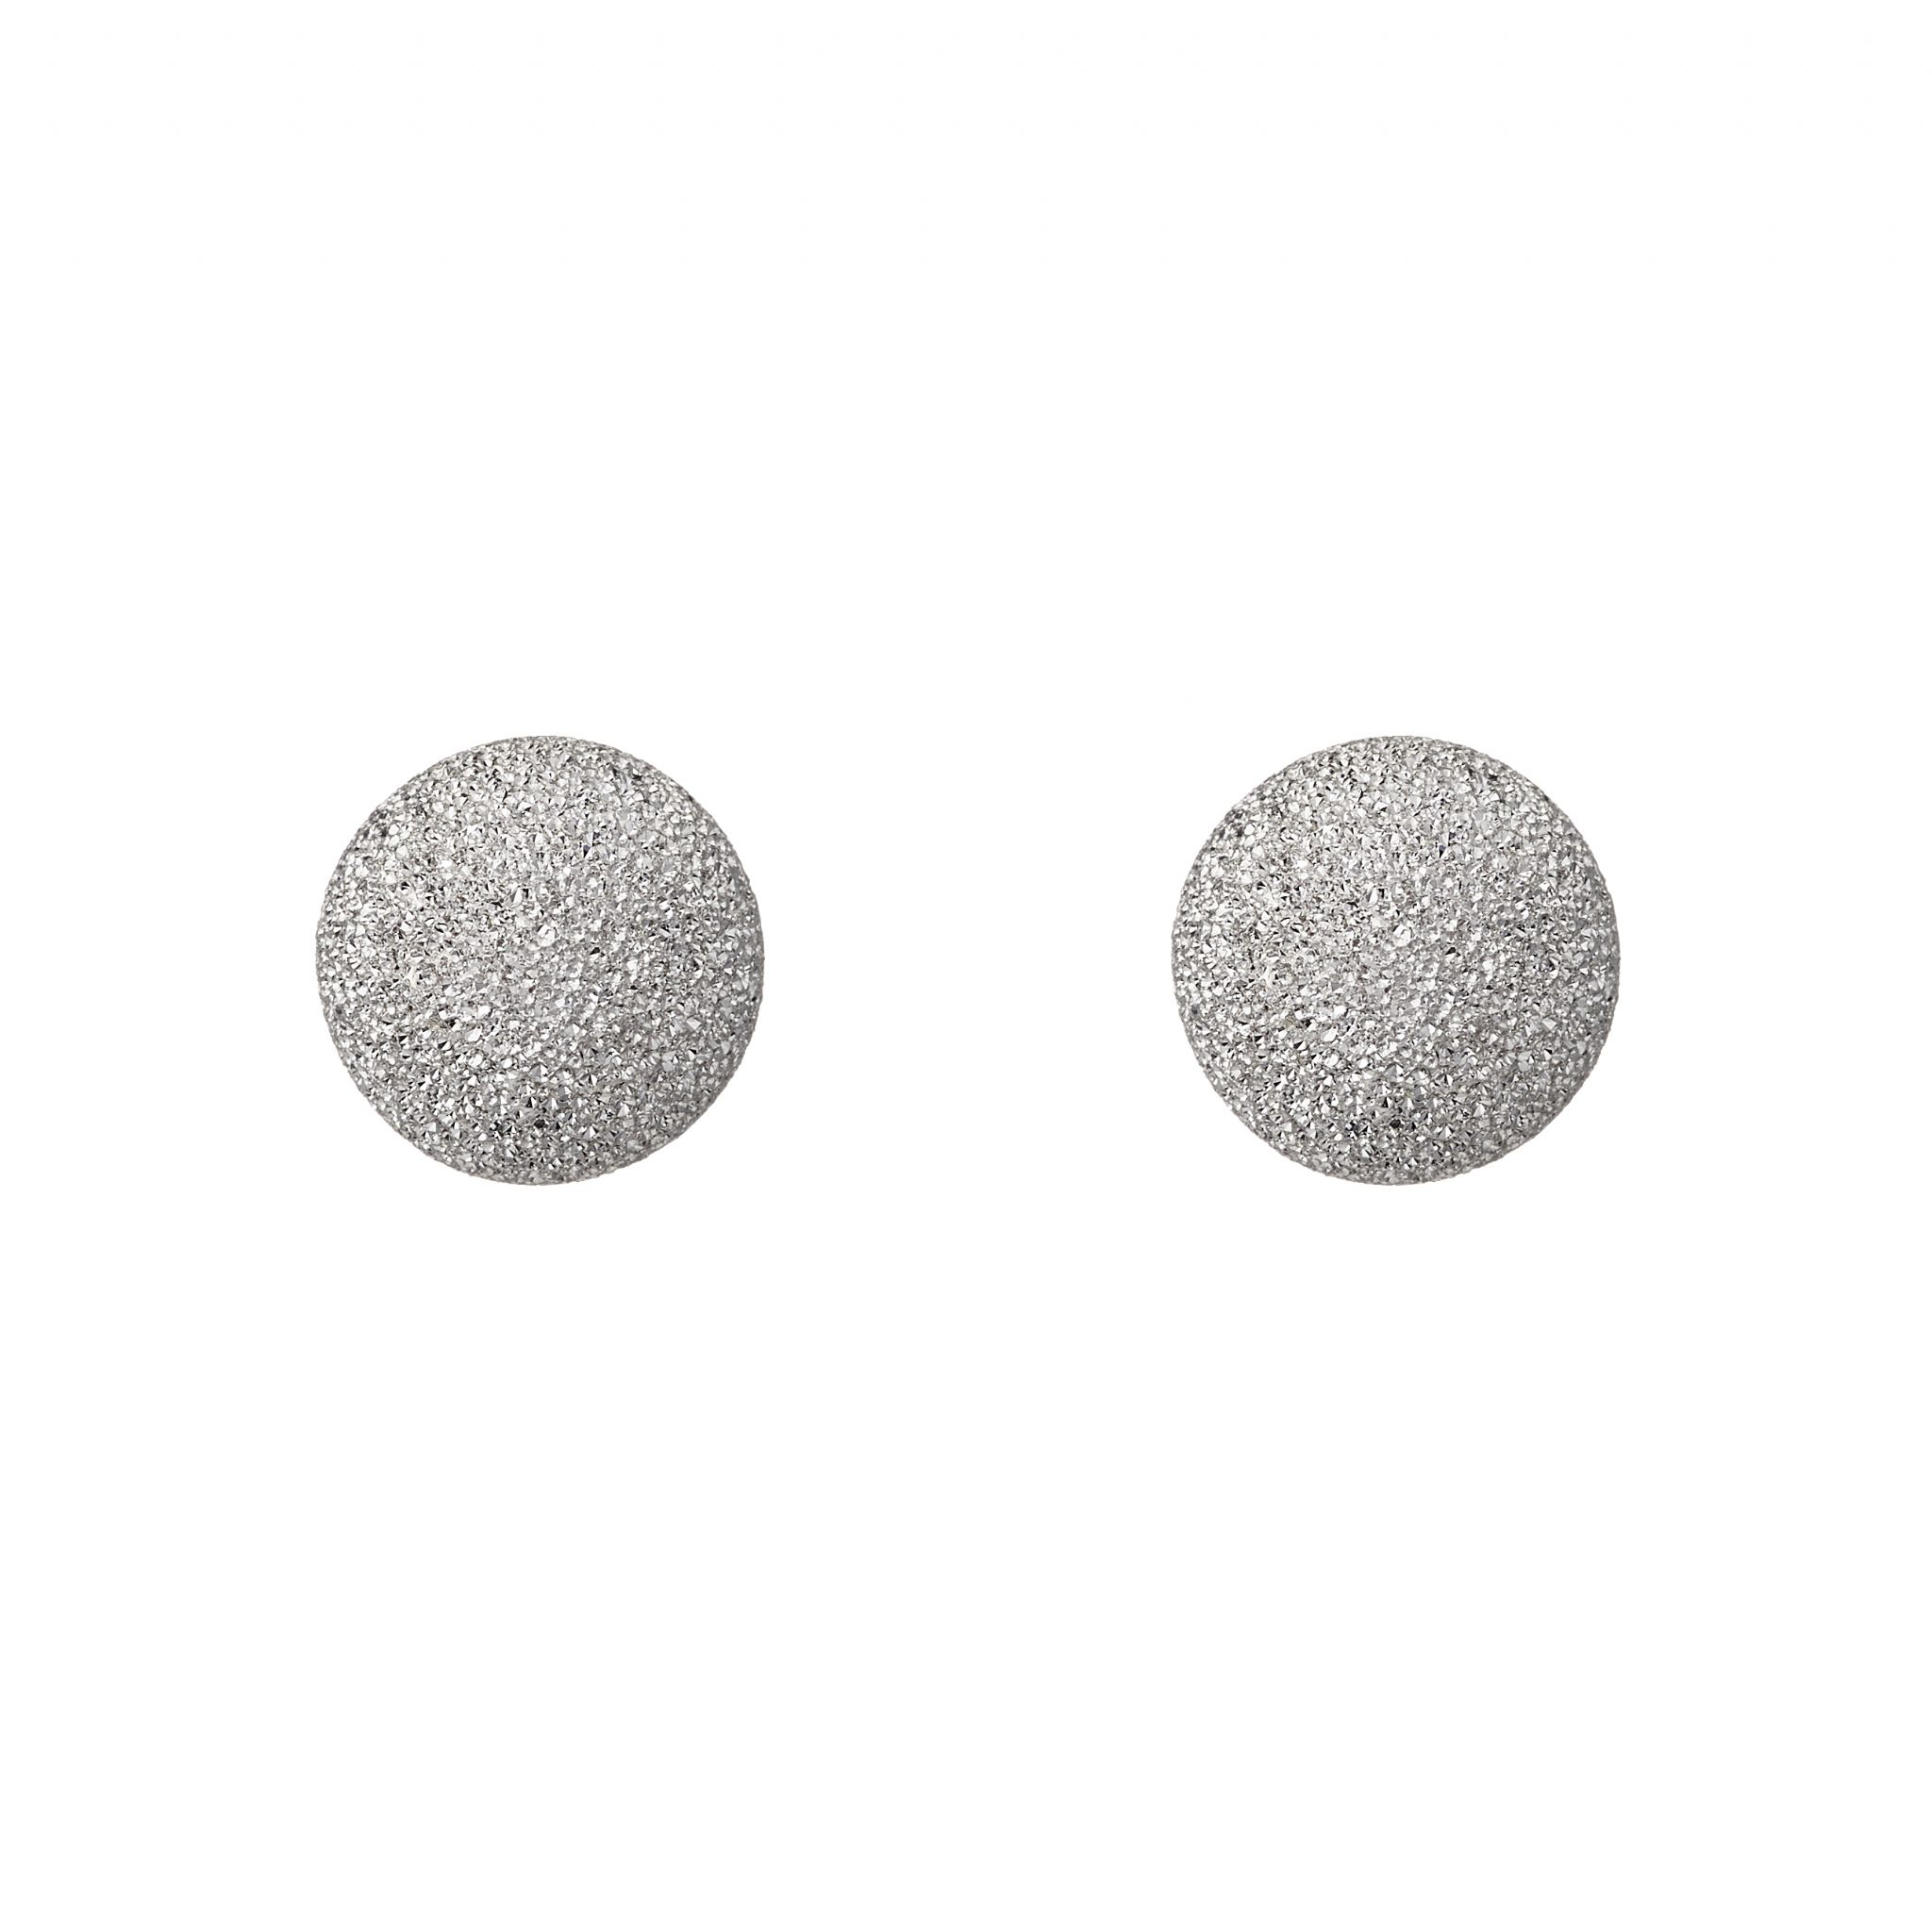 8mm Sterling Silver frosted ball stud earrings